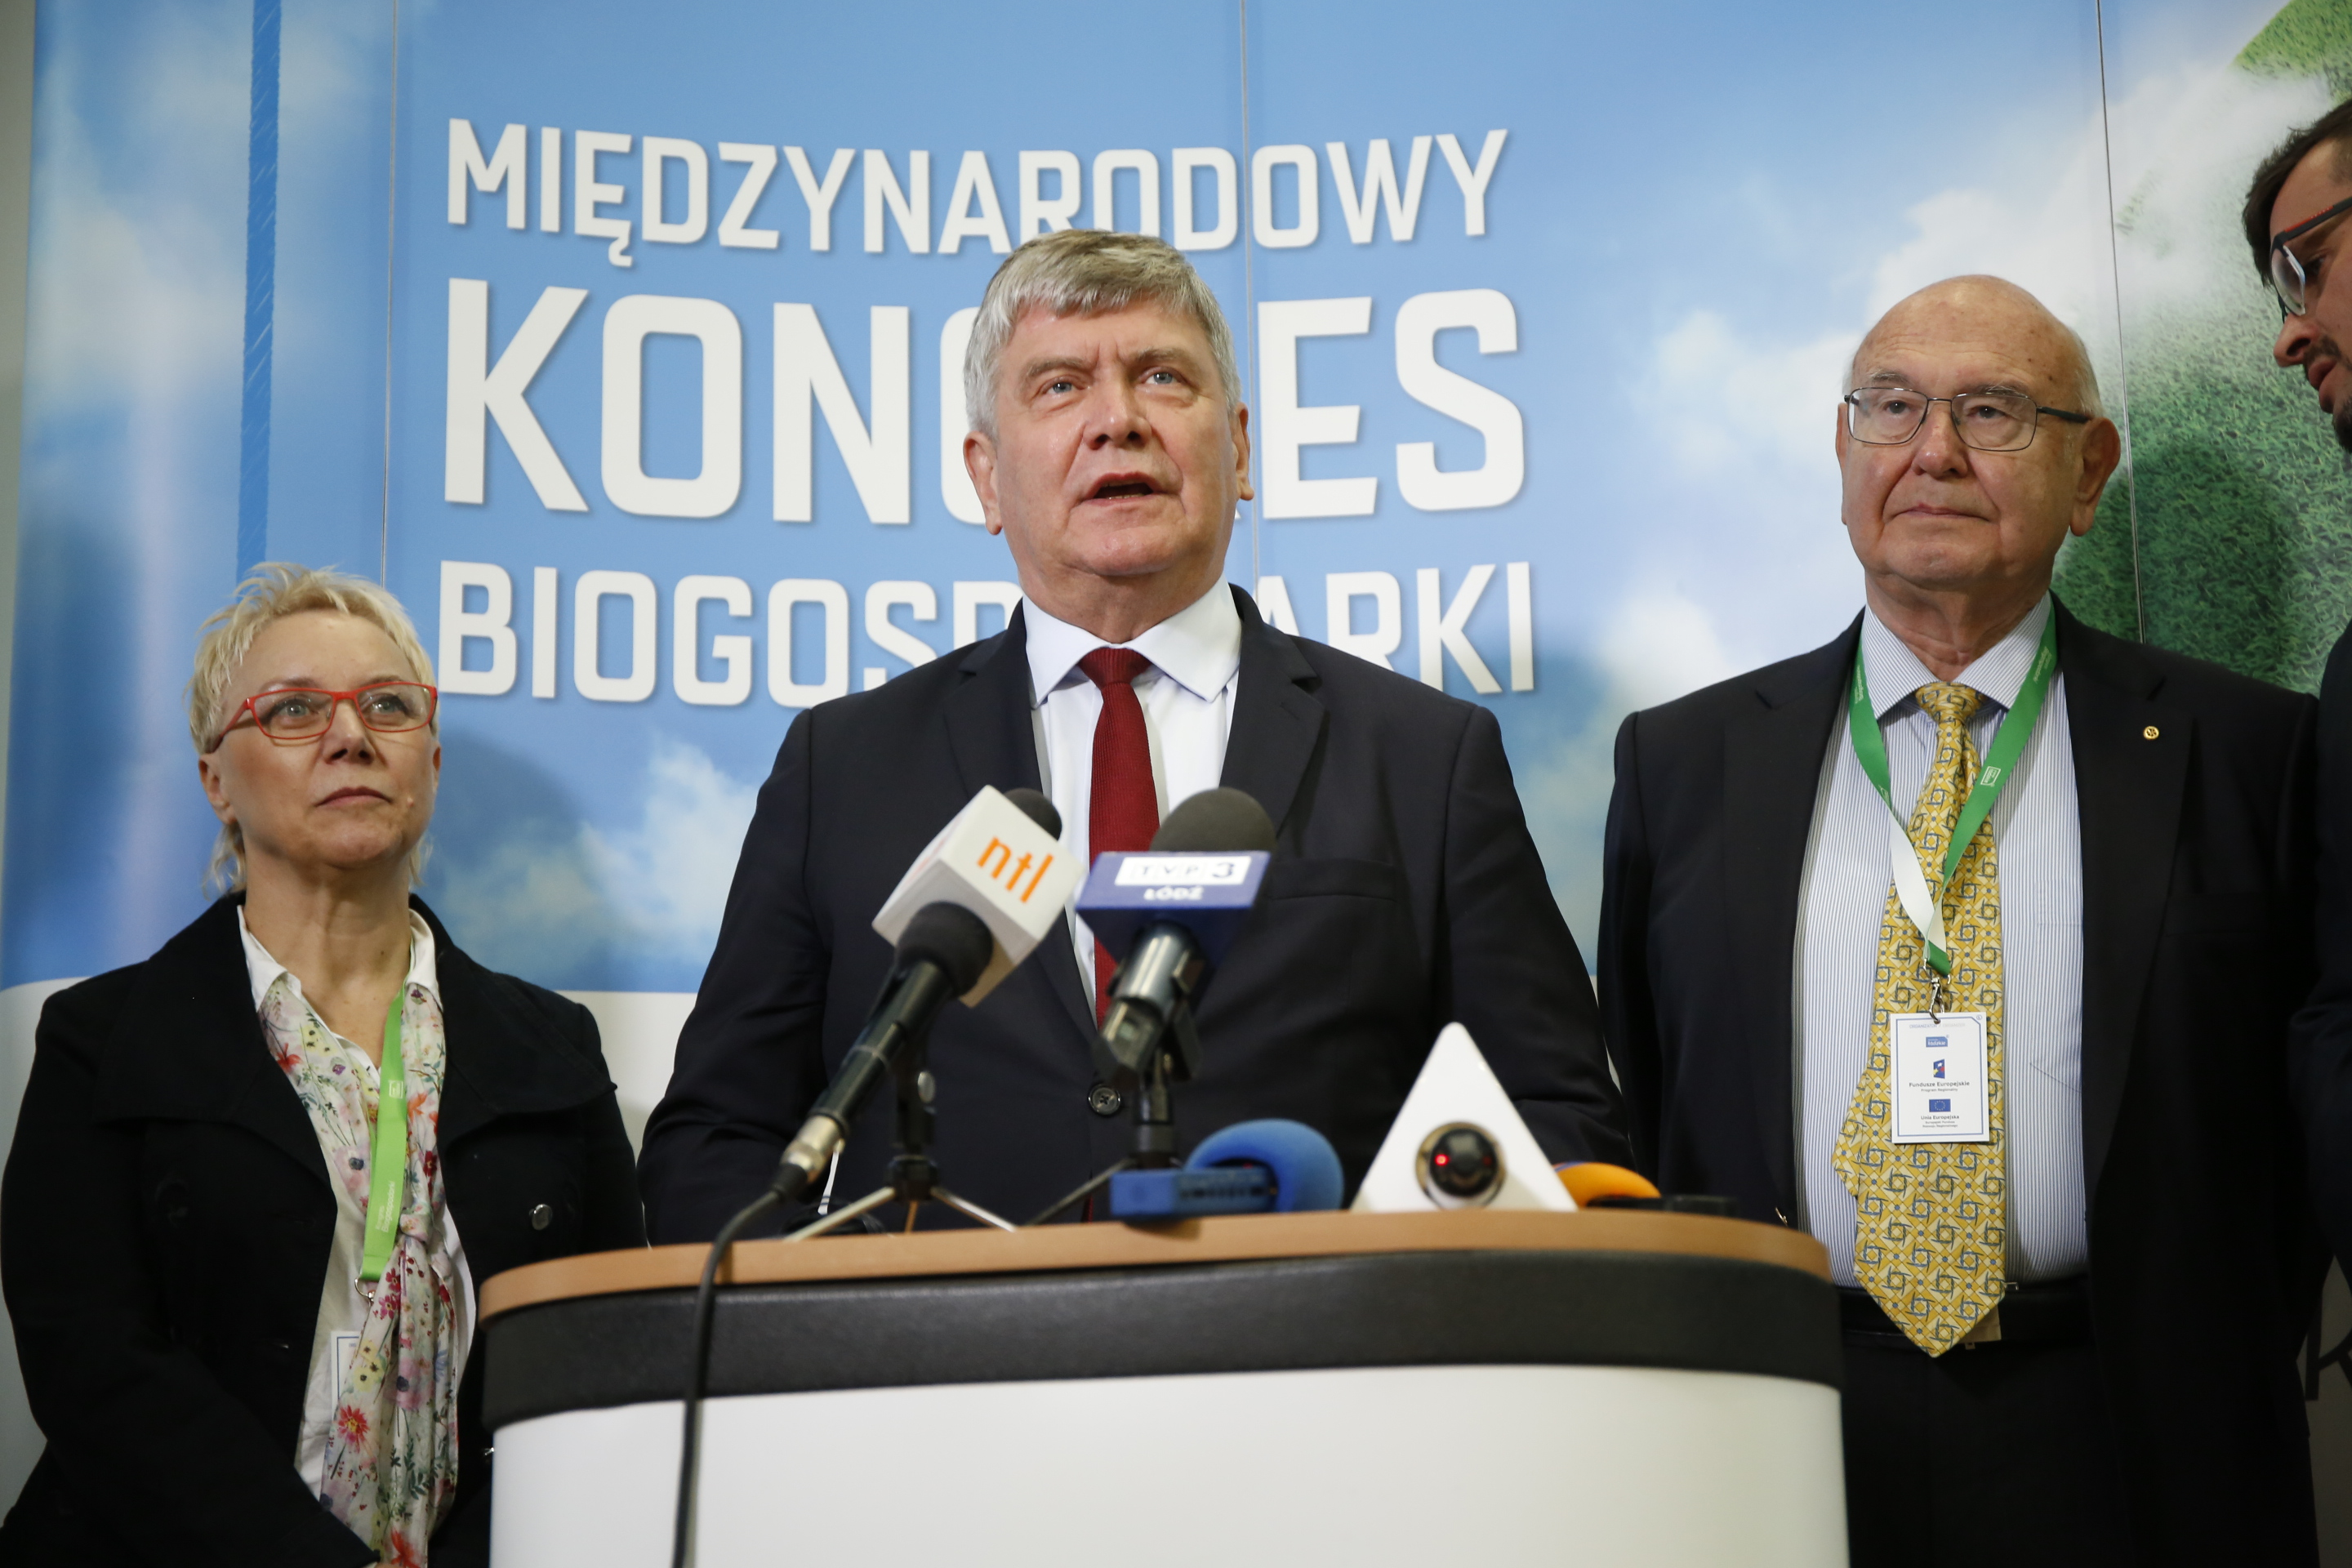 Bioeconomy drives Lodzkie. Americans are looking up to us